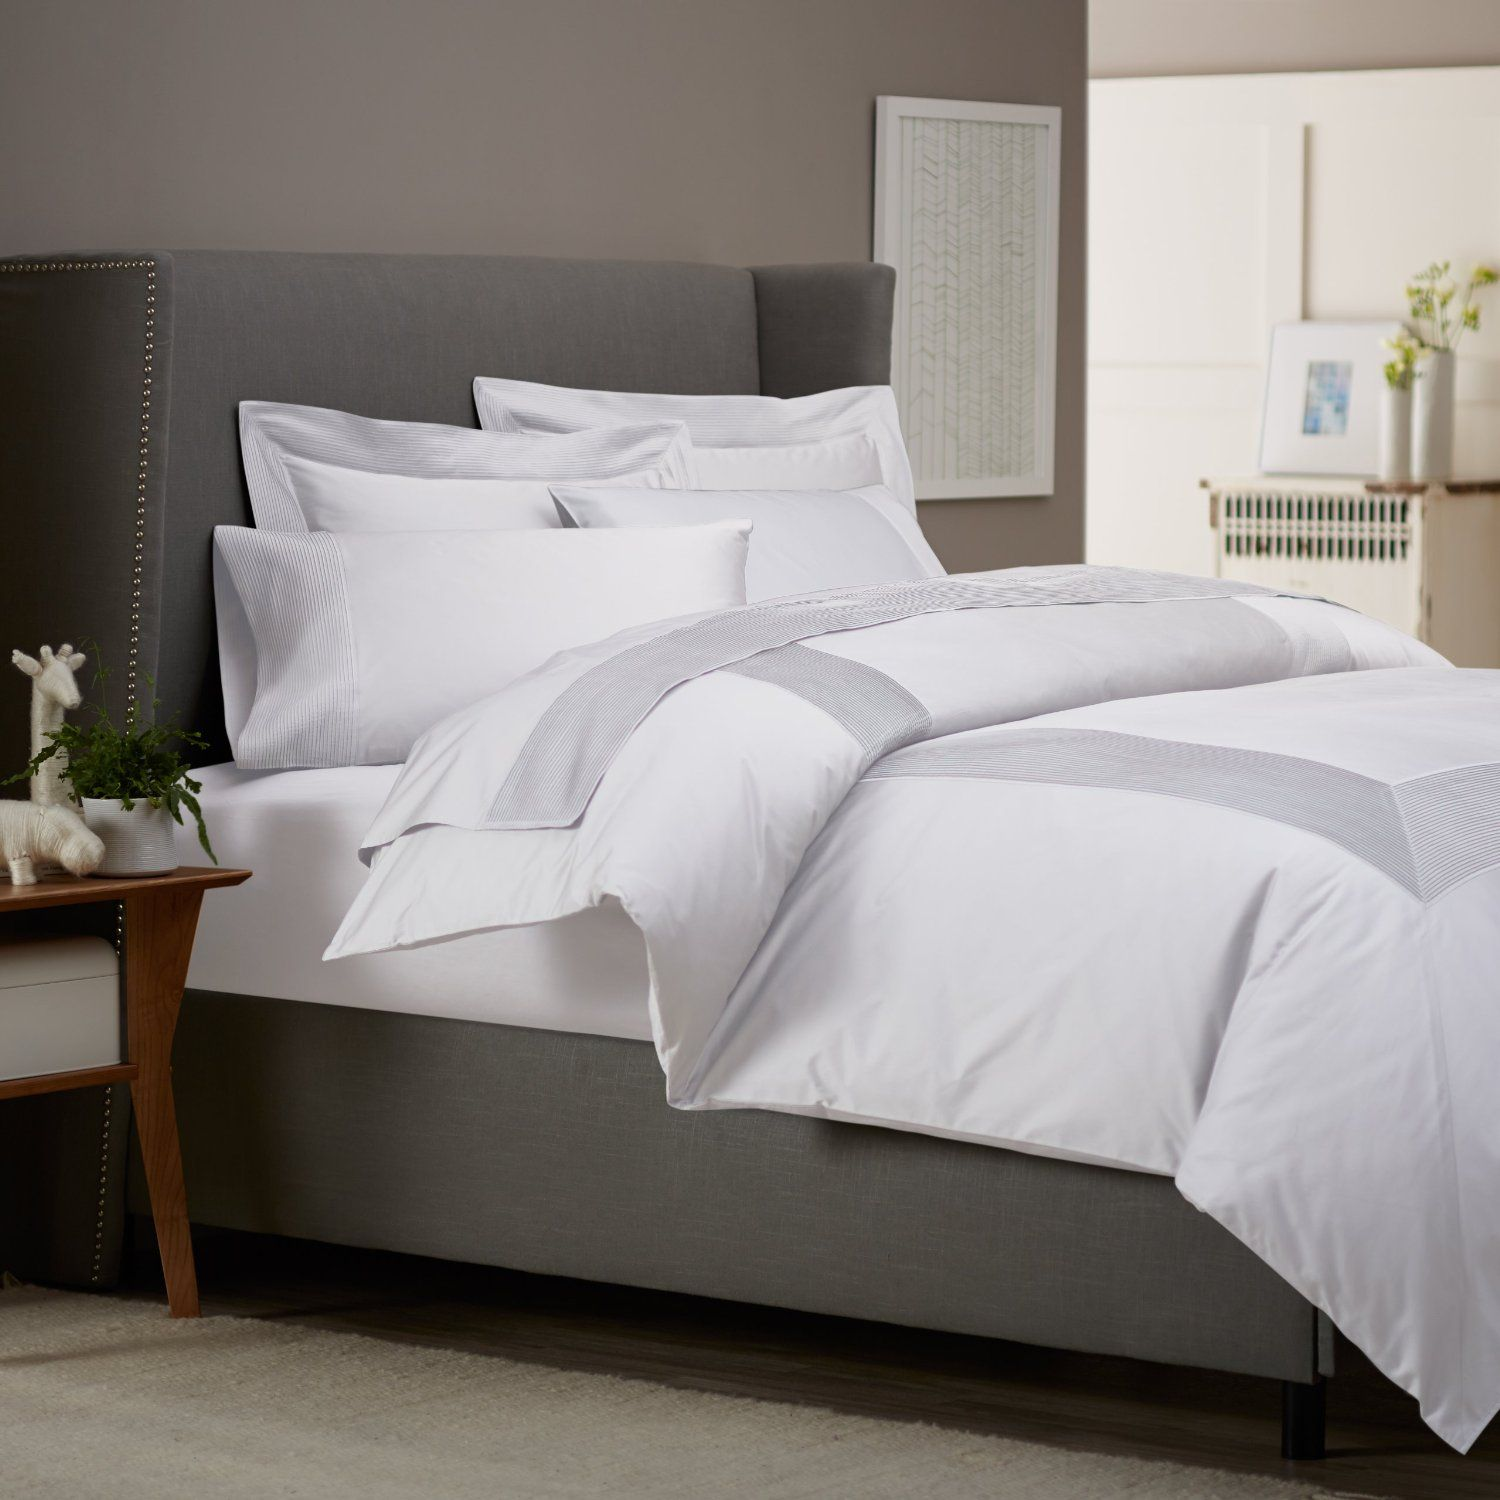 Black and white bed sheets designs - Statue Of Get Alluring Visage By Displaying A White Comforter Sets King